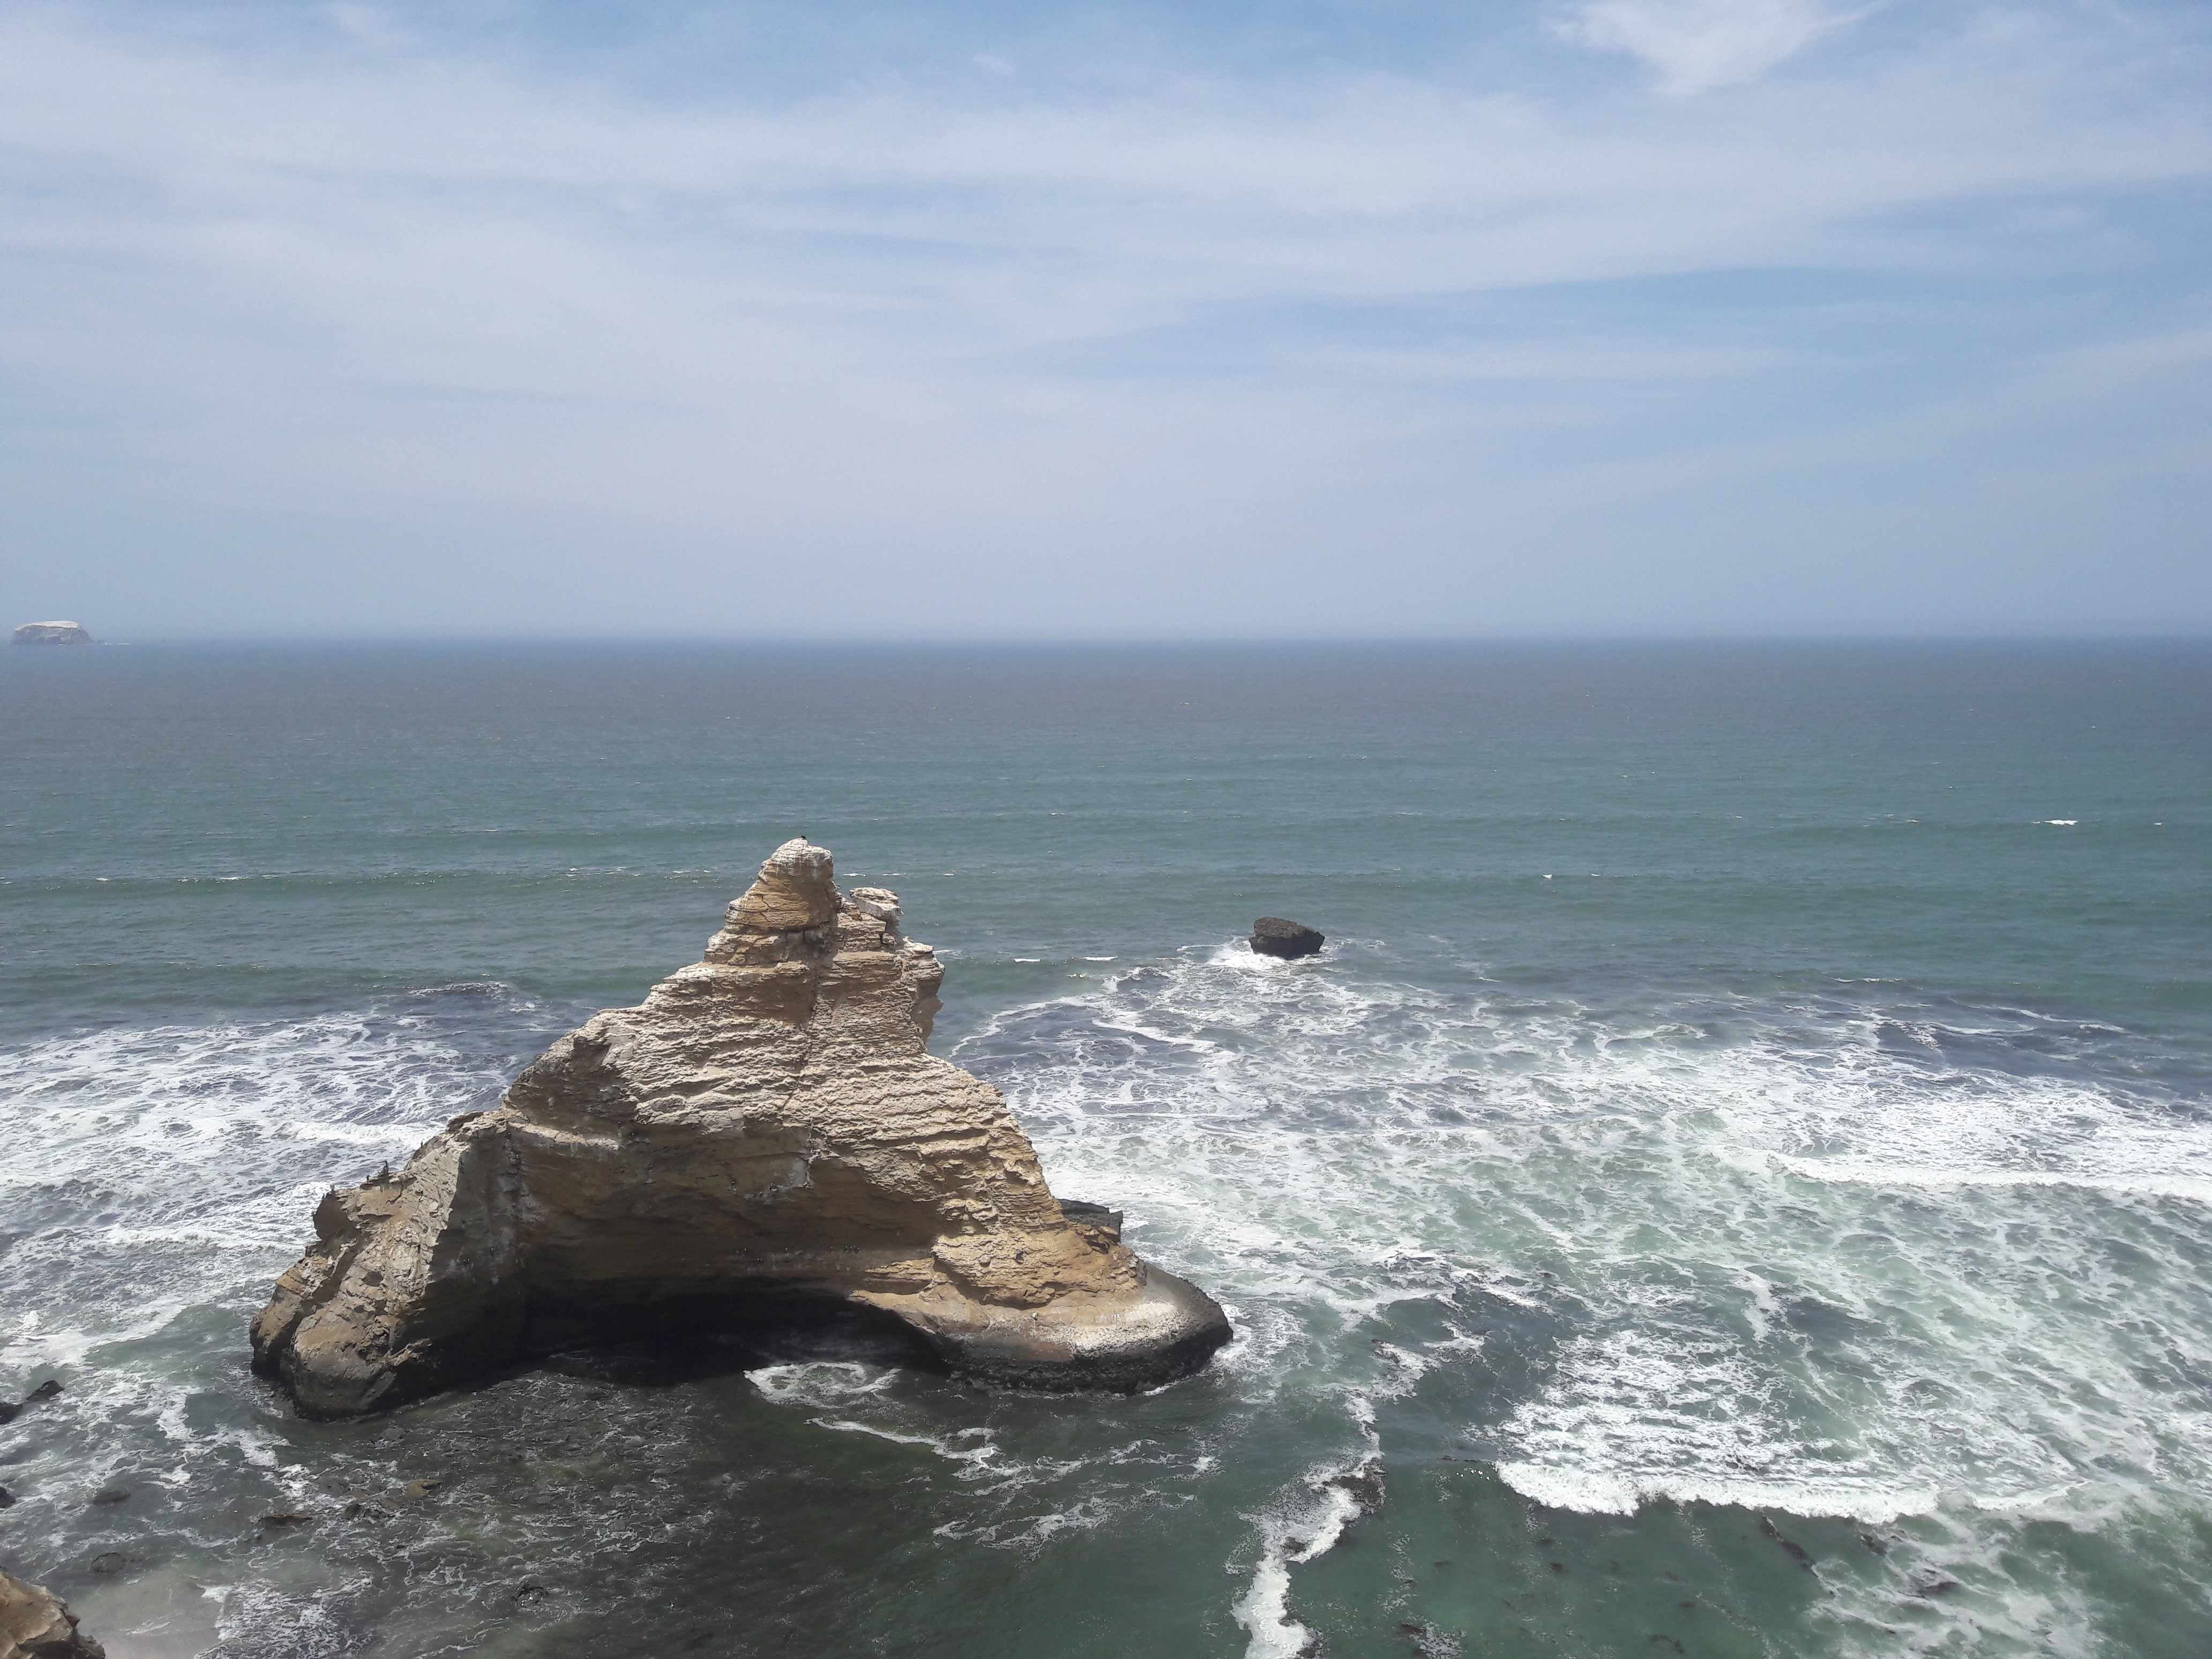 A rock formation in the water